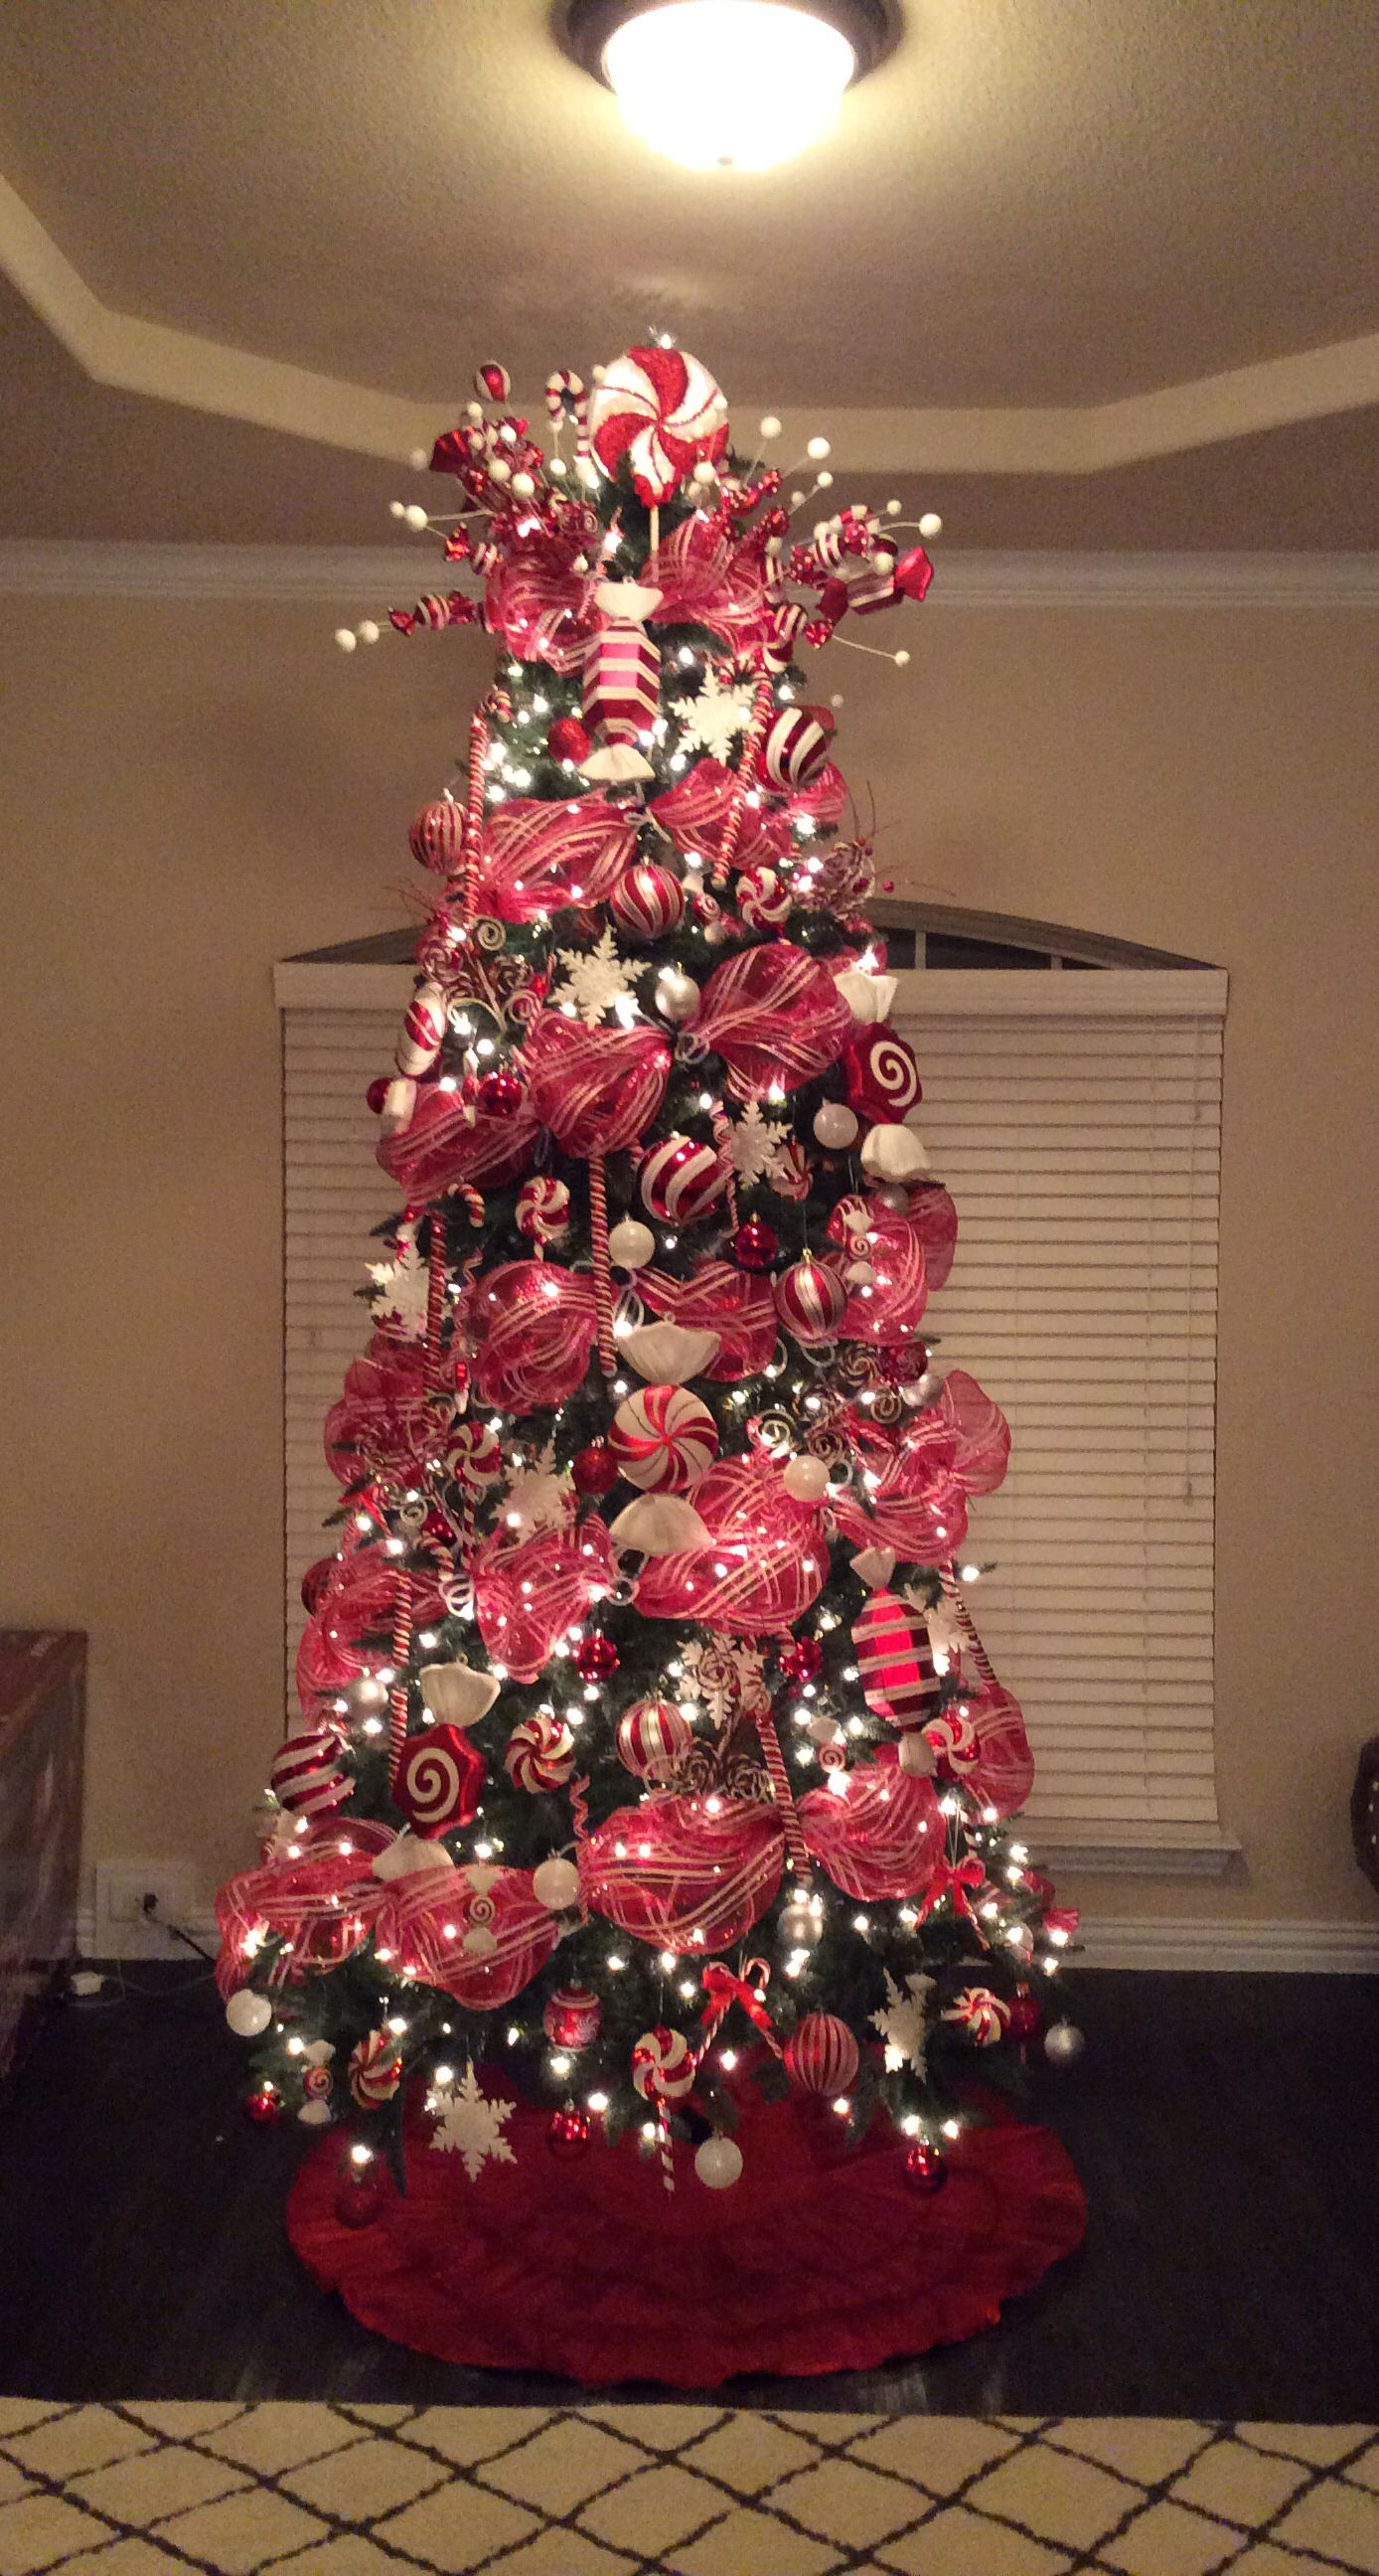 Christmas tree Christmas red and white Christmas tree deco mesh